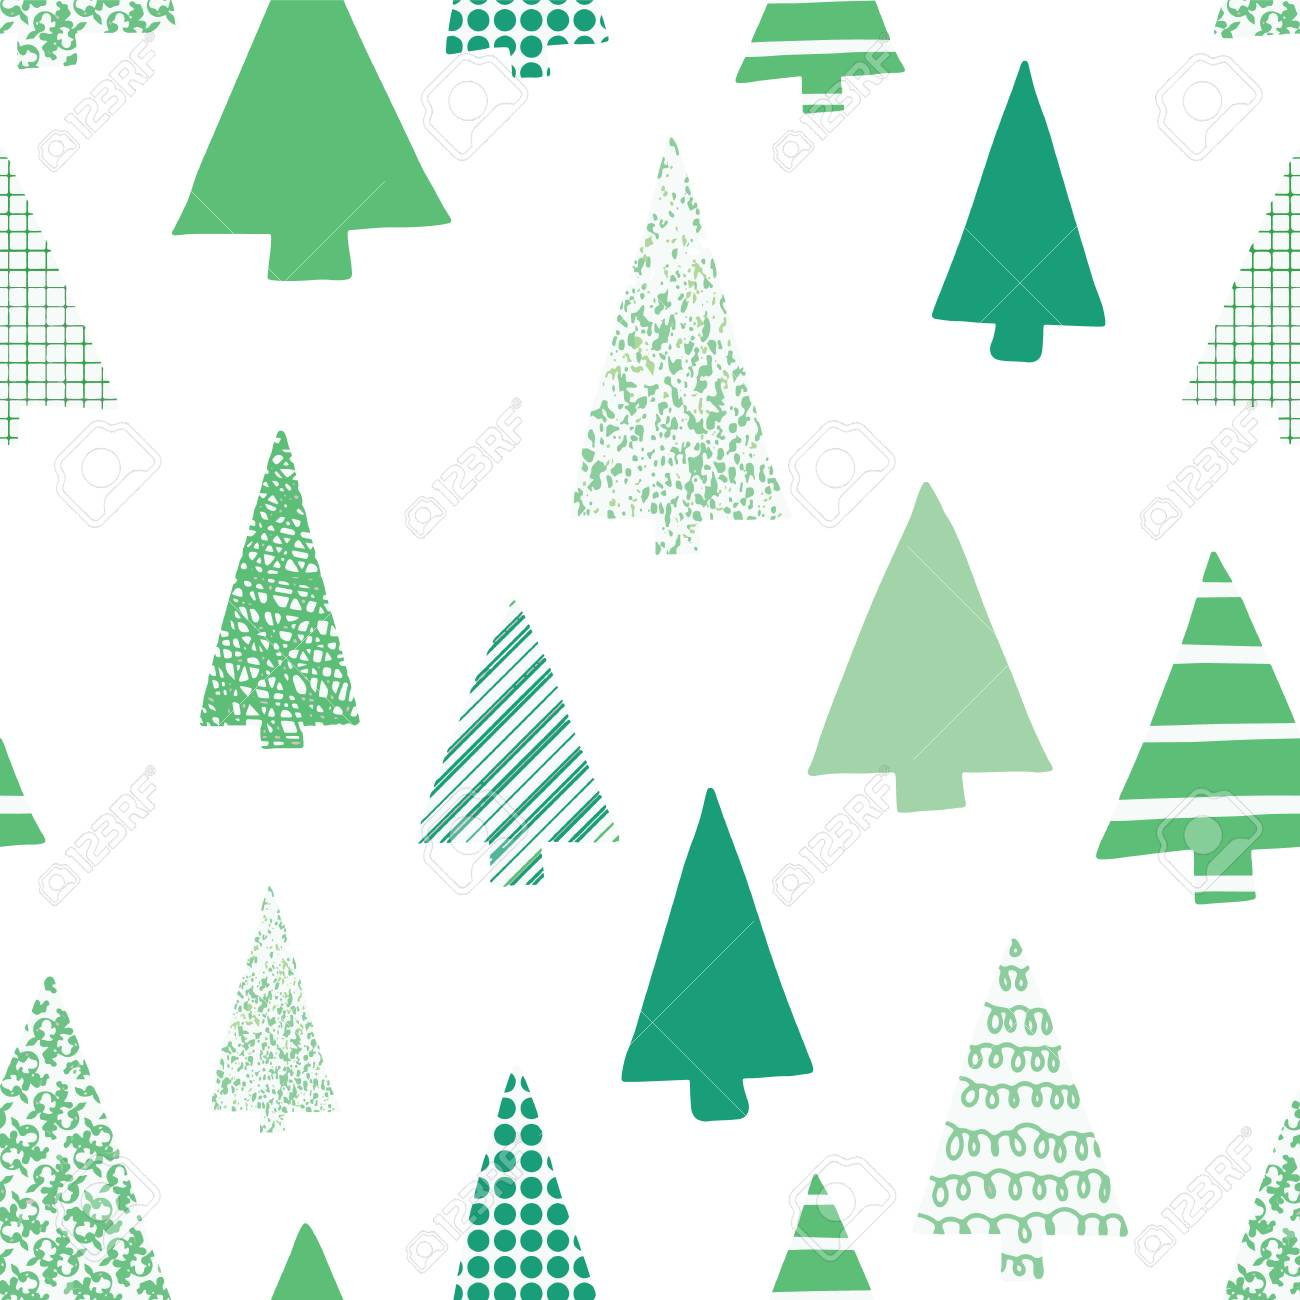 Christmas Trees Silhouette.Abstract Green Christmas Trees Vector Seamless Pattern Christmas